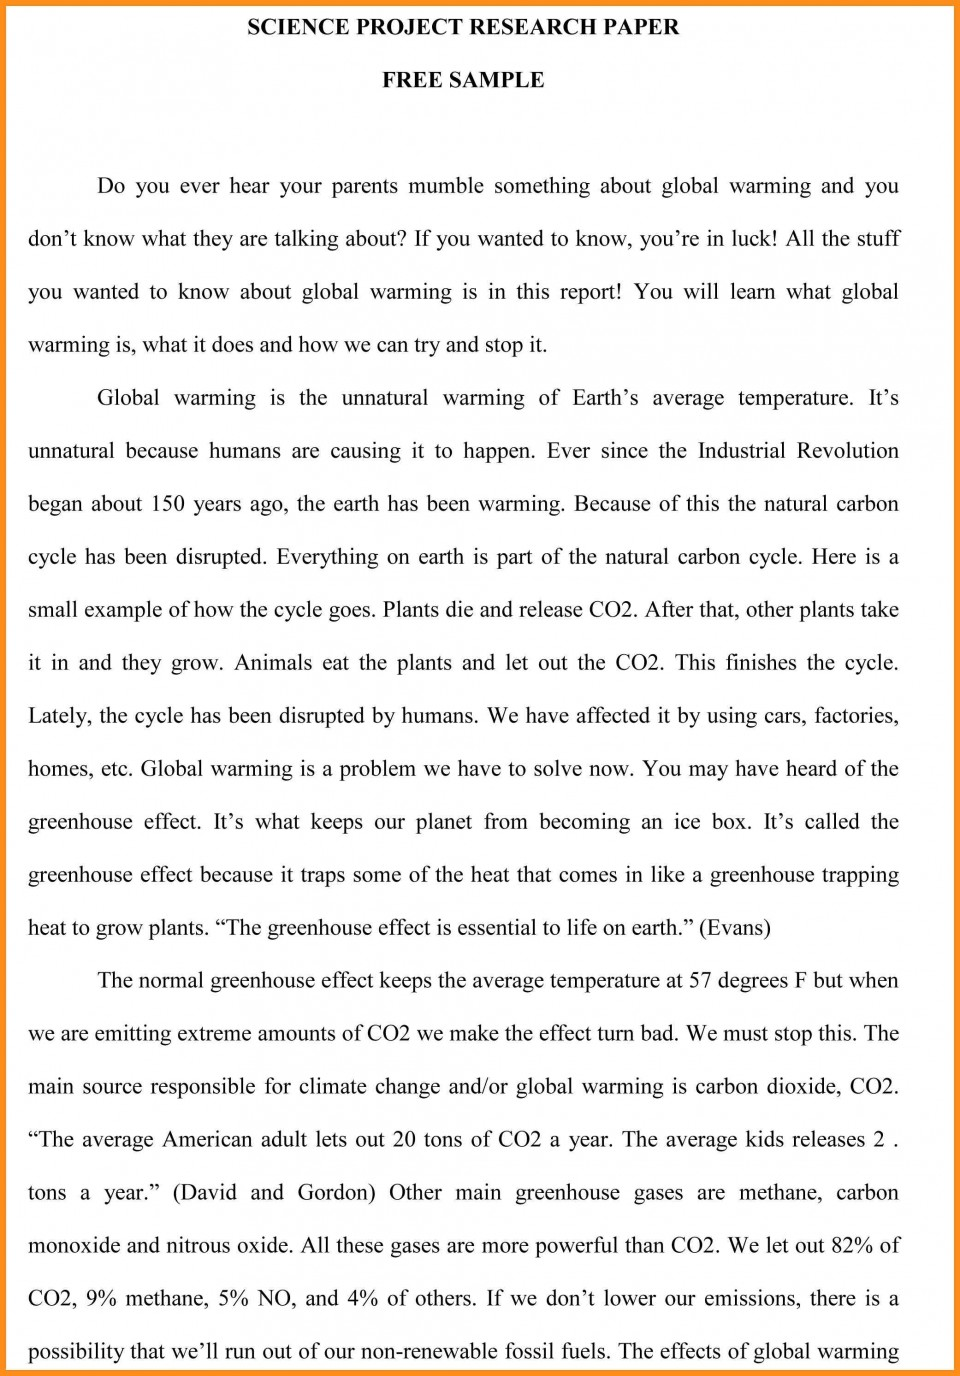 003 Good Essay Topics How To Write English An About Best Argumentative Inside Interesting Arg Funny For College Students Middle School High Fun Cool Top Prompts 7th Graders Pdf 960